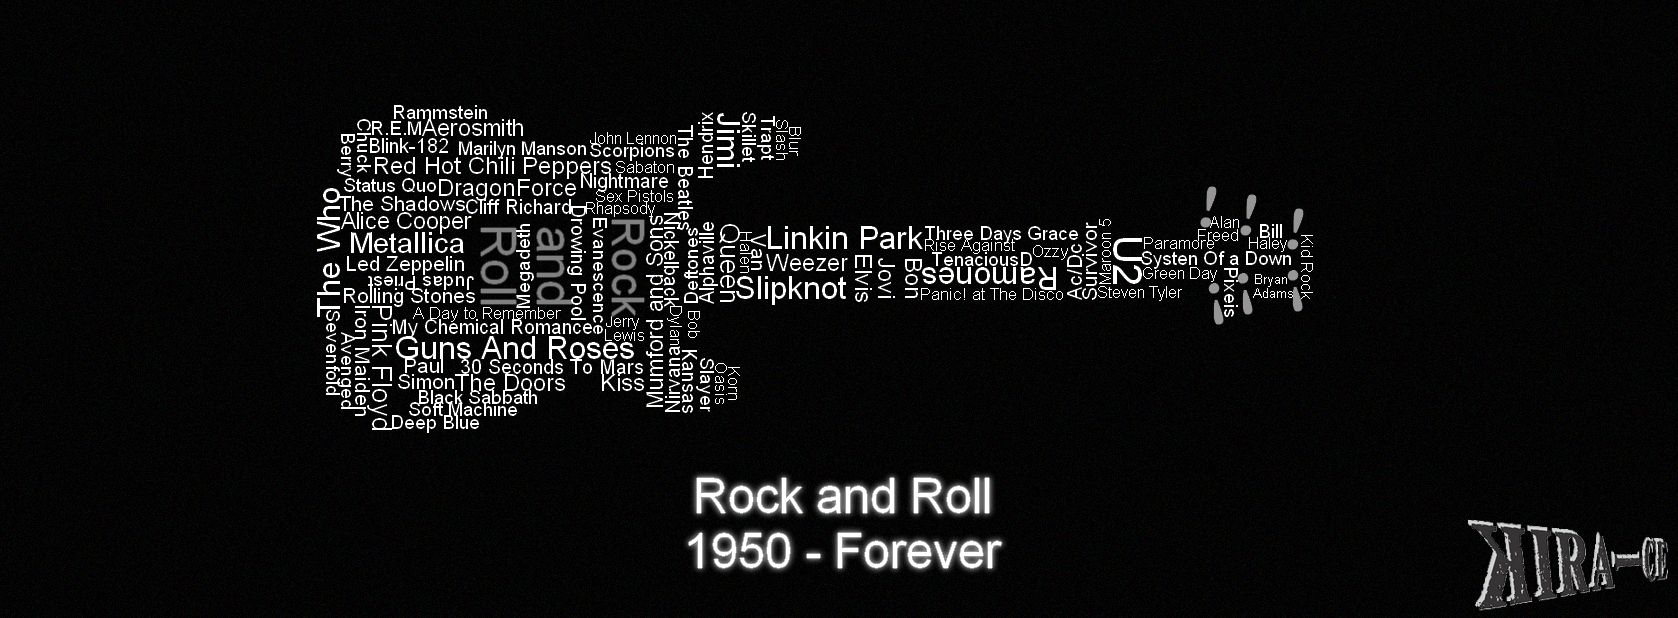 Rock and roll forever quotes quotesgram - Rock And Roll By Kiraiceyangz Rock And Roll By Kiraiceyangz